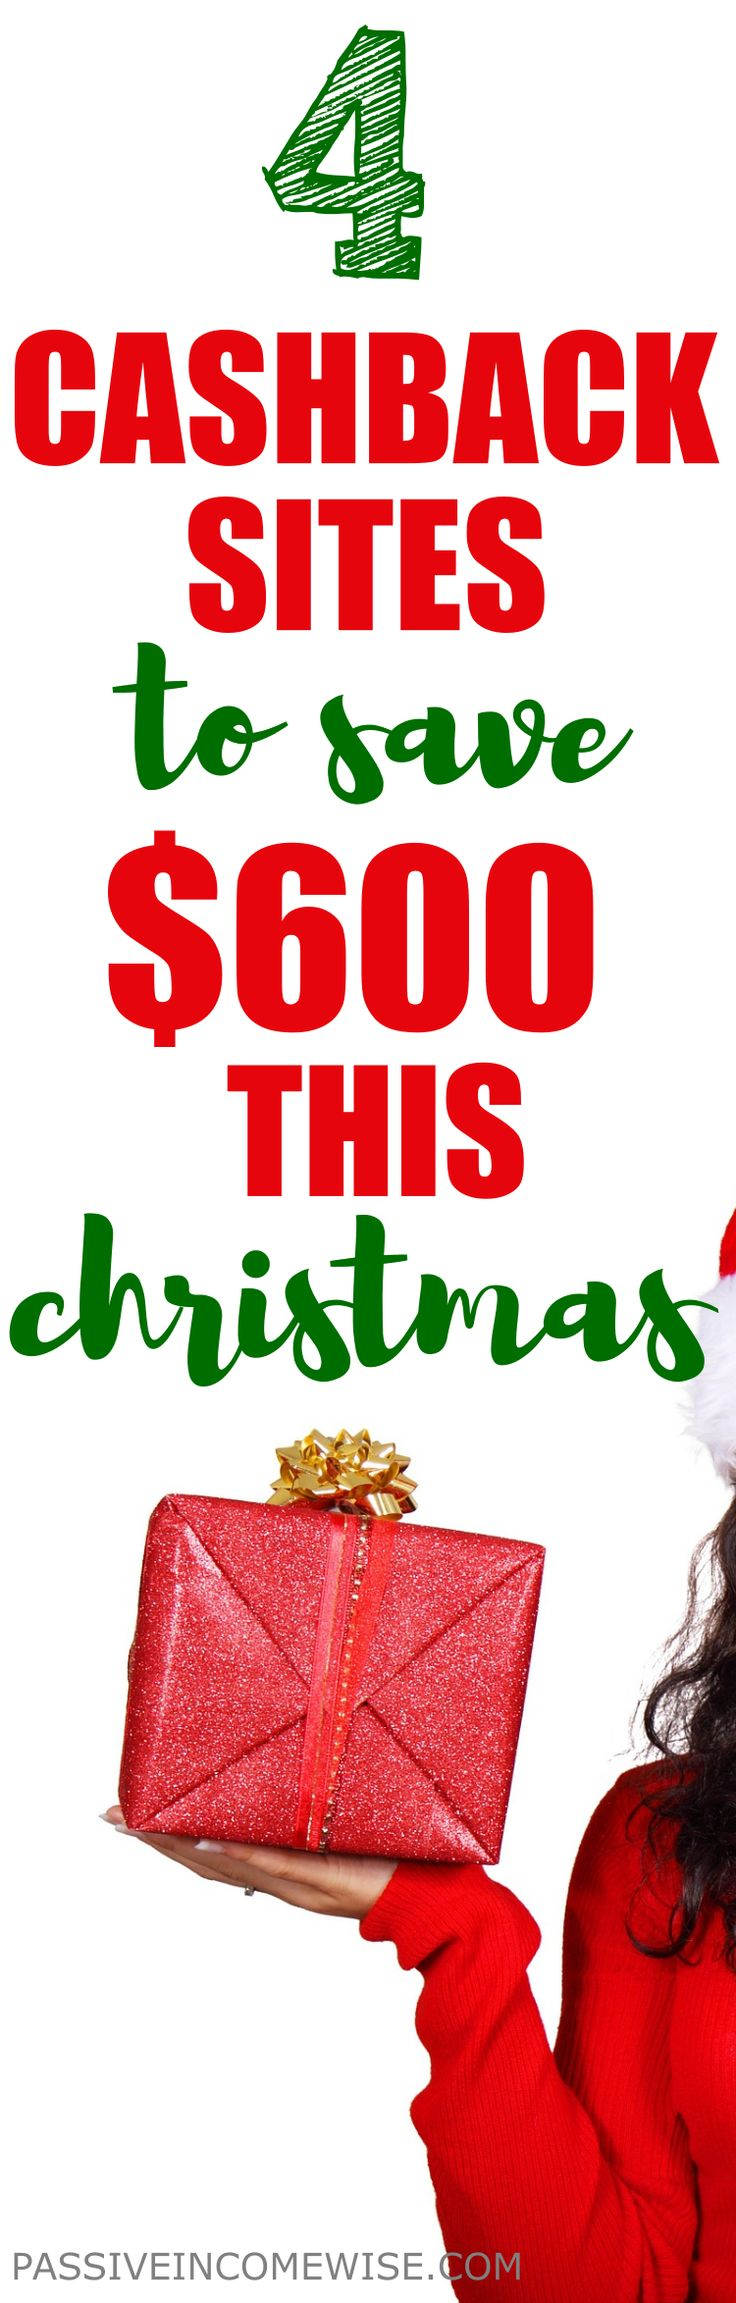 If you want to earn cash back when you shop for Christmas, I've included some sites I always use for my online purchases. You can use them too and start earning. Save money christmas, earn cashback, ebates, christmas gifts, how to save money, get money back